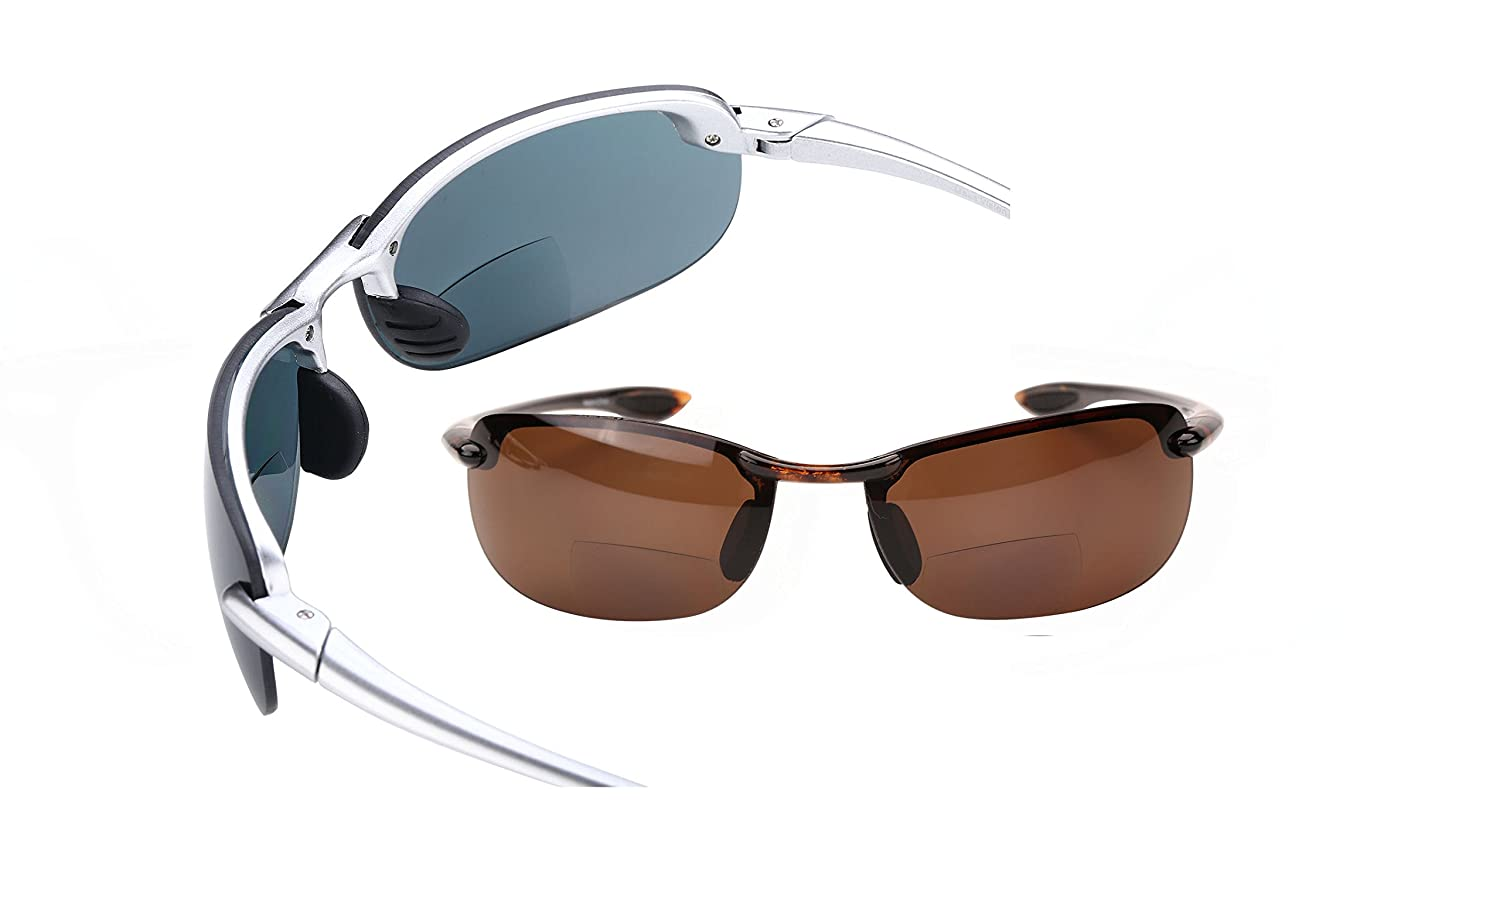 2 Pair of Dreamin Maui Polarized Bifocal Sunglasses - Sport Wrap Reading Sunglasses 1.5) 010MV-POL-BF